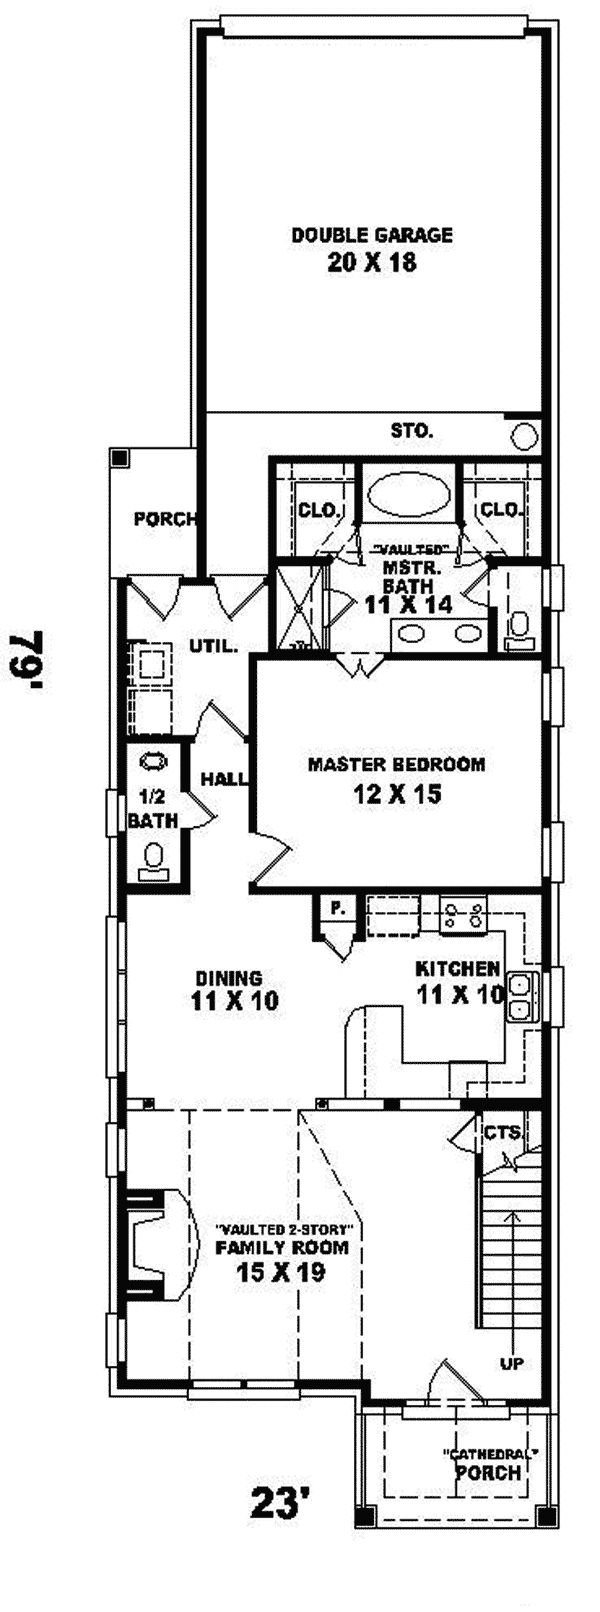 Best 25 narrow house plans ideas on pinterest narrow for Narrow house plans with garage in back